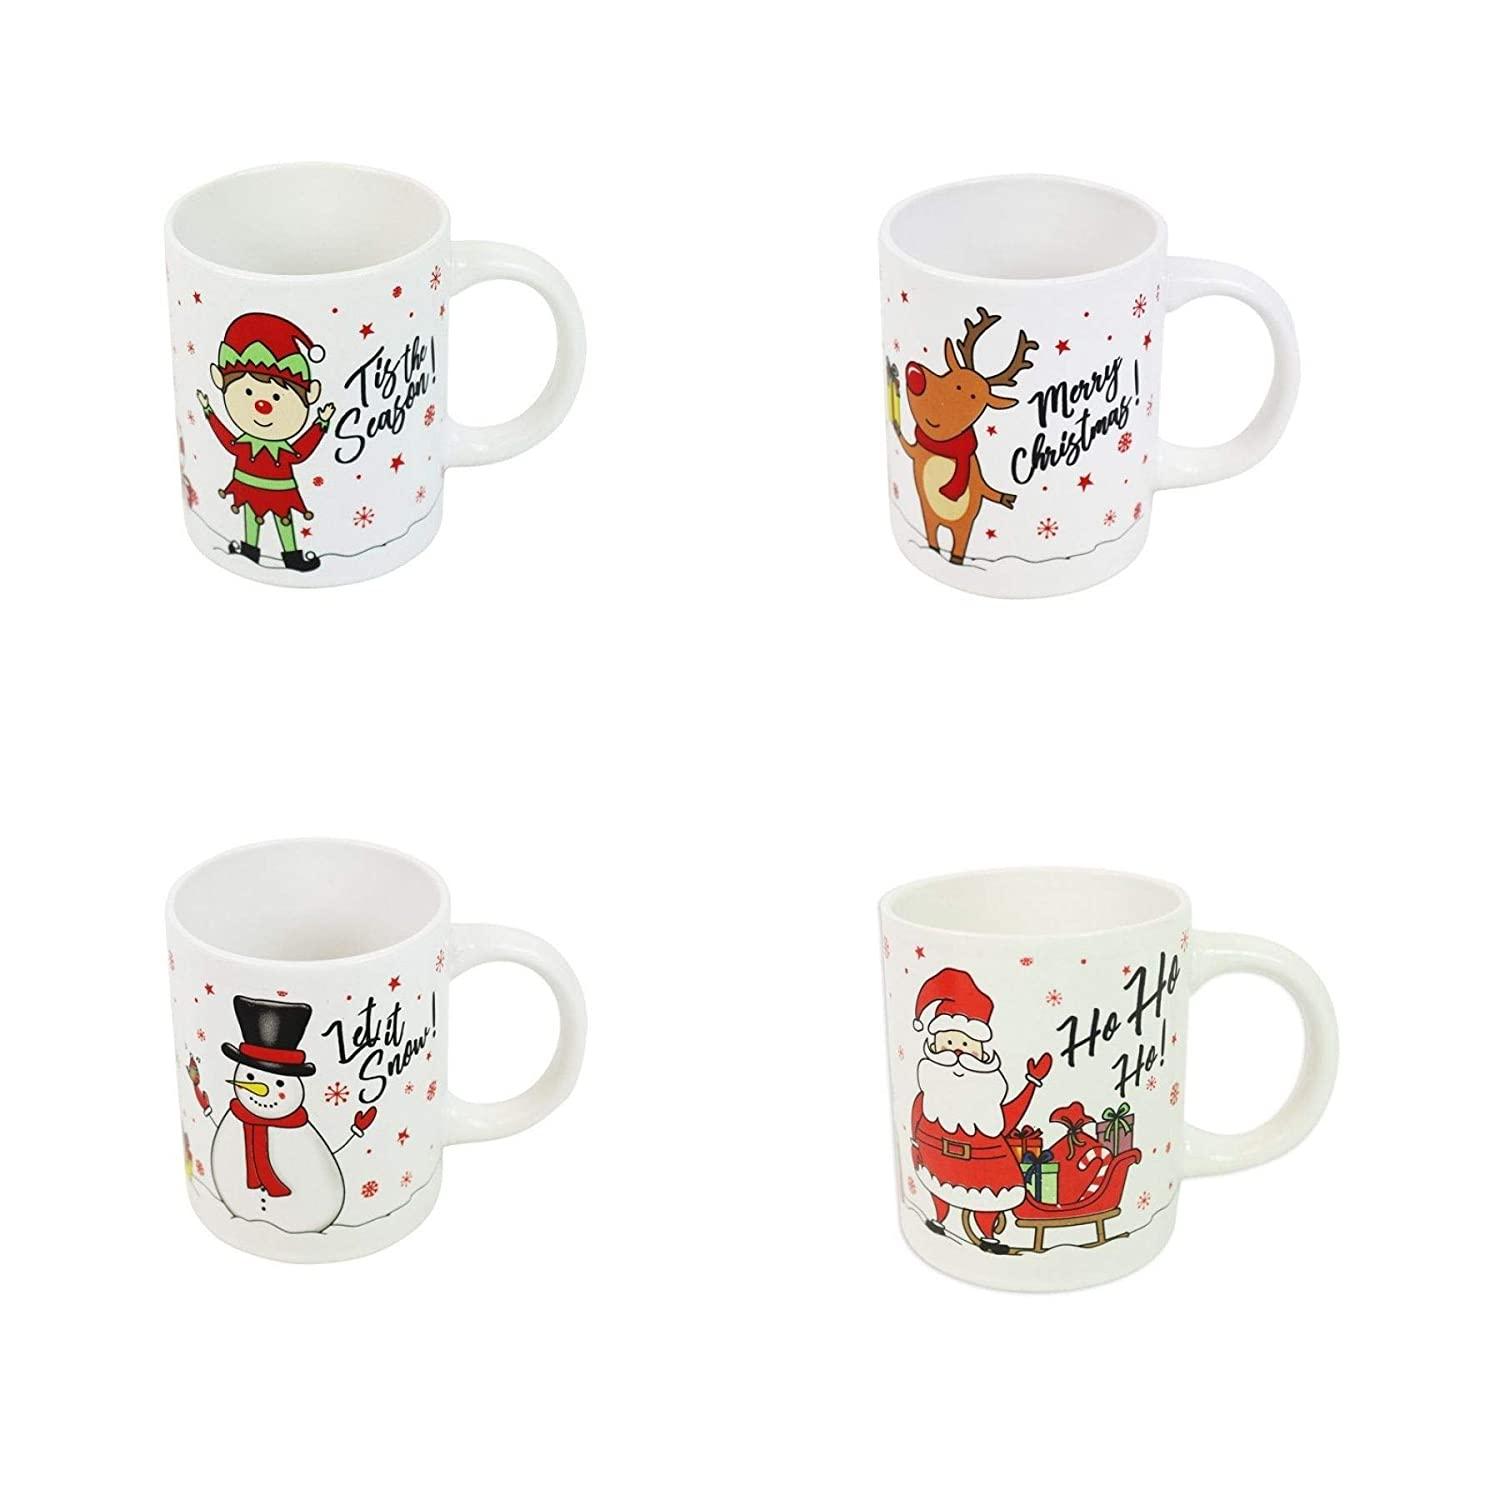 Christmas Mugs.Christmas Mugs Set Of 4 Festive Party Xmas Mugs Home Kitchen Tea Coffee Cups Christmas Tableware Xmas Decorations Mug Set Office Tea Cups Ceramic Mugs